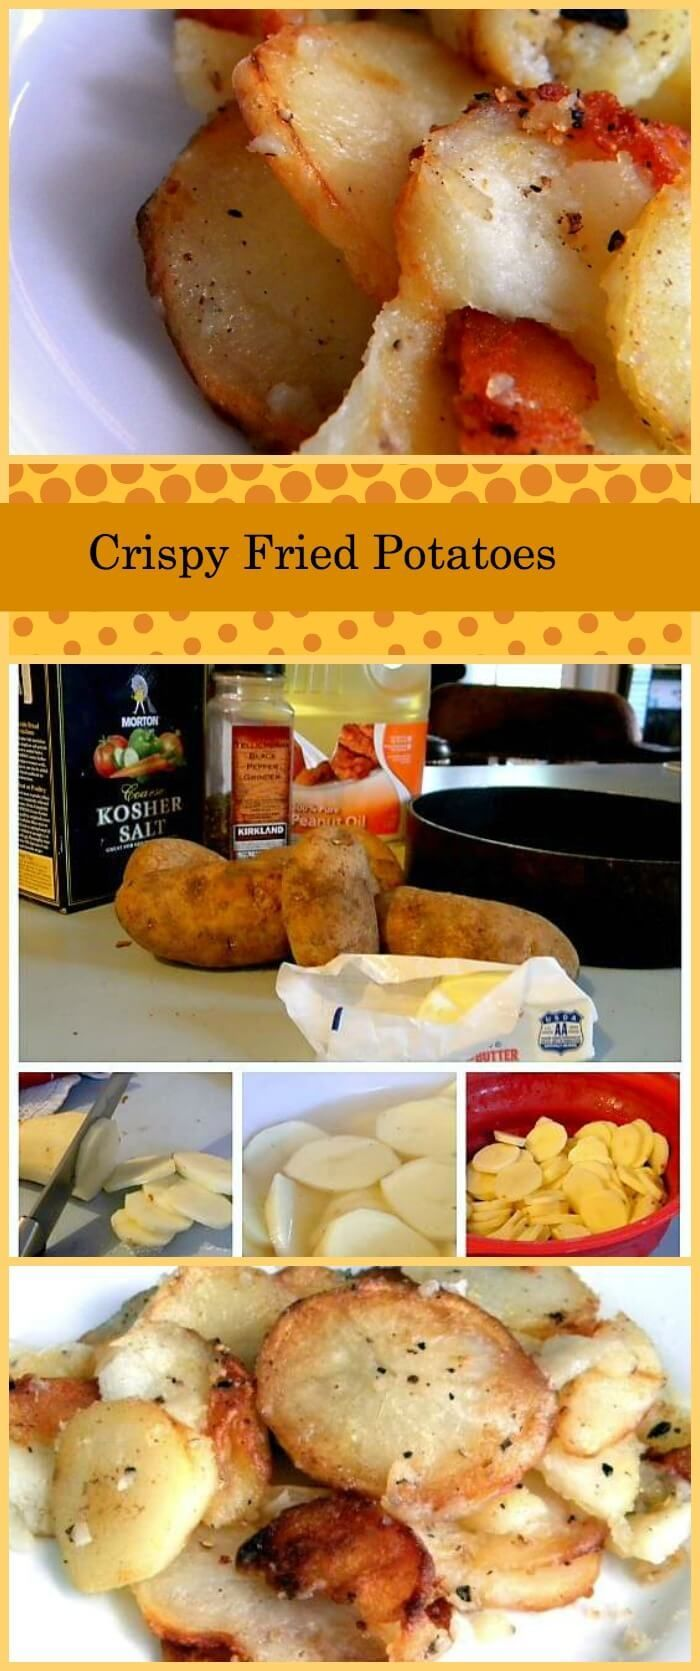 Pan fried potatoes, or home fries, that are perfectly crispy aren't difficult but there is a trick to getting that golden crust and tender, buttery interior. I'm sharing my tips and tricks for getting them perfect every time. Here they are -- just like you remember. via @Marye at Restless Chipotle